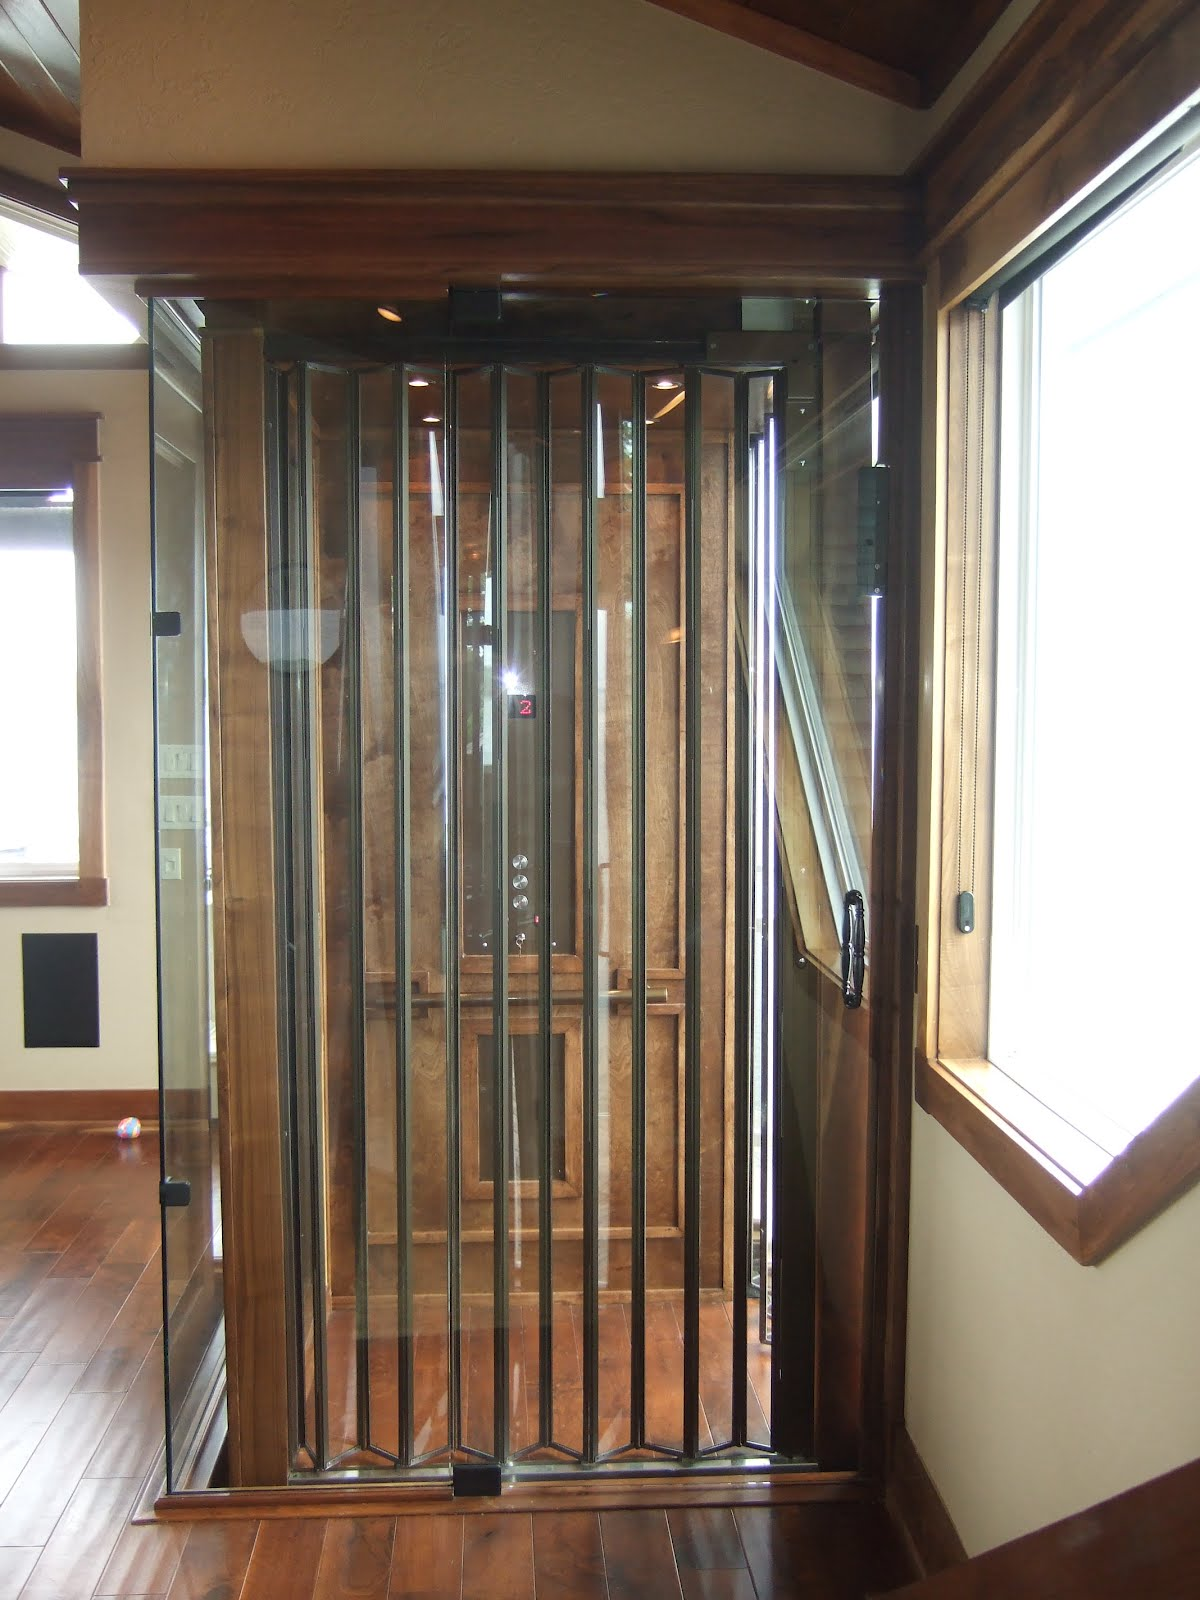 Home elevators prices - Home Elevators Prices